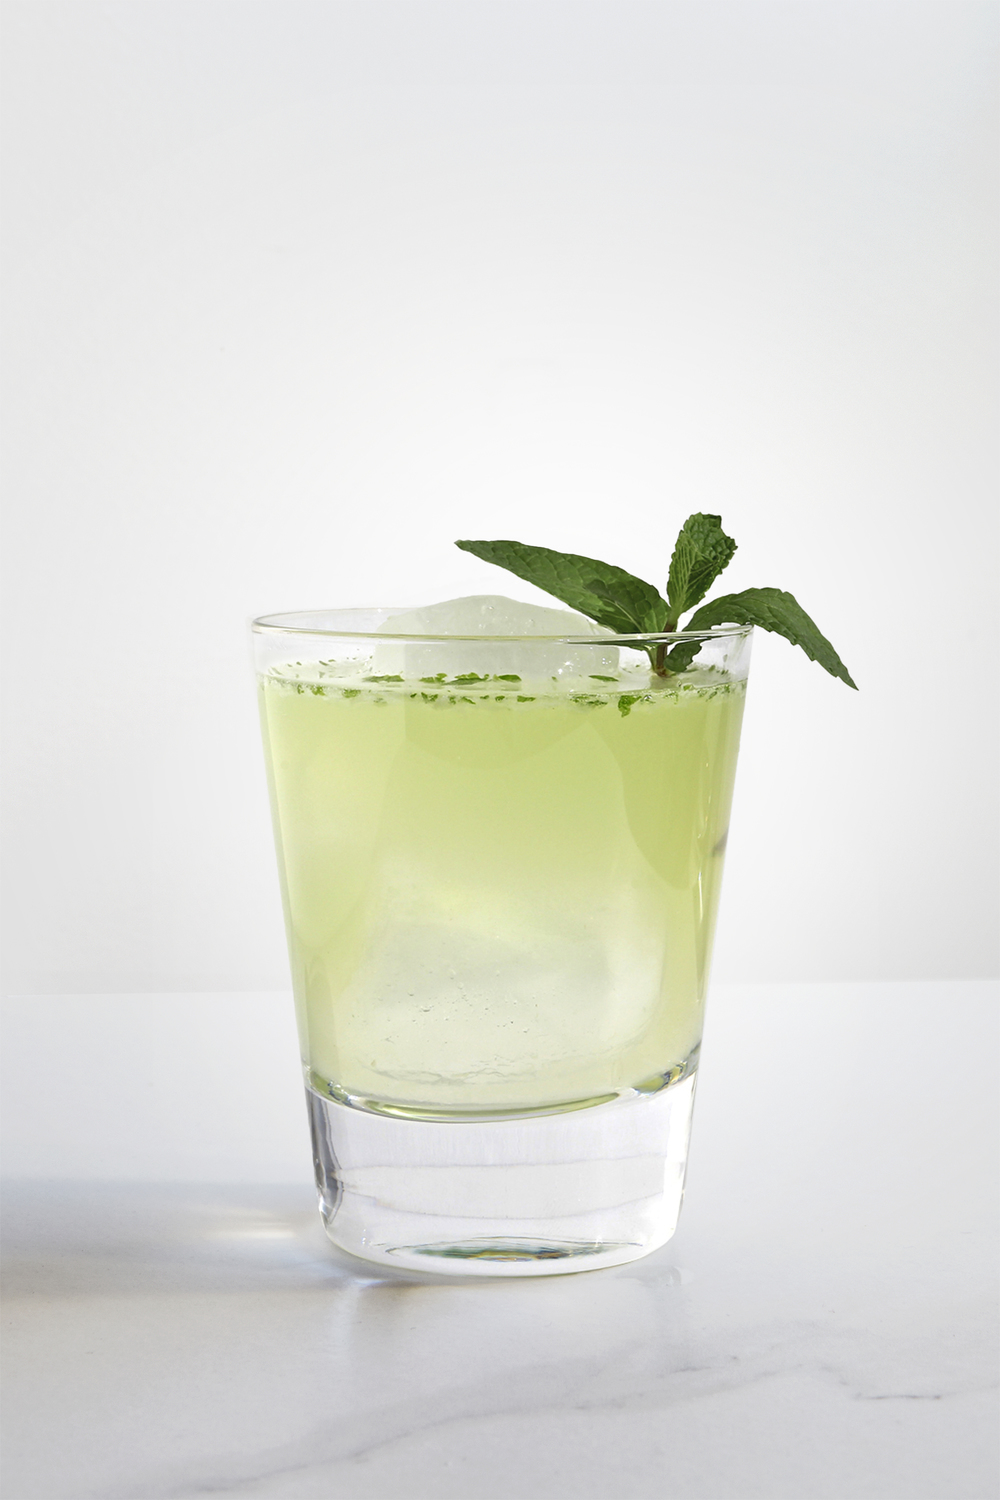 EASTSIDE 1 1/2 oz Gin 1 oz Chareau 3/4 oz Fresh Lime Juice 1/2 oz Simple Syrup 4-5 Fresh Mint Leaves Shake all ingredients with ice. Strain and pour over ice. Garnish with Fresh Mint.